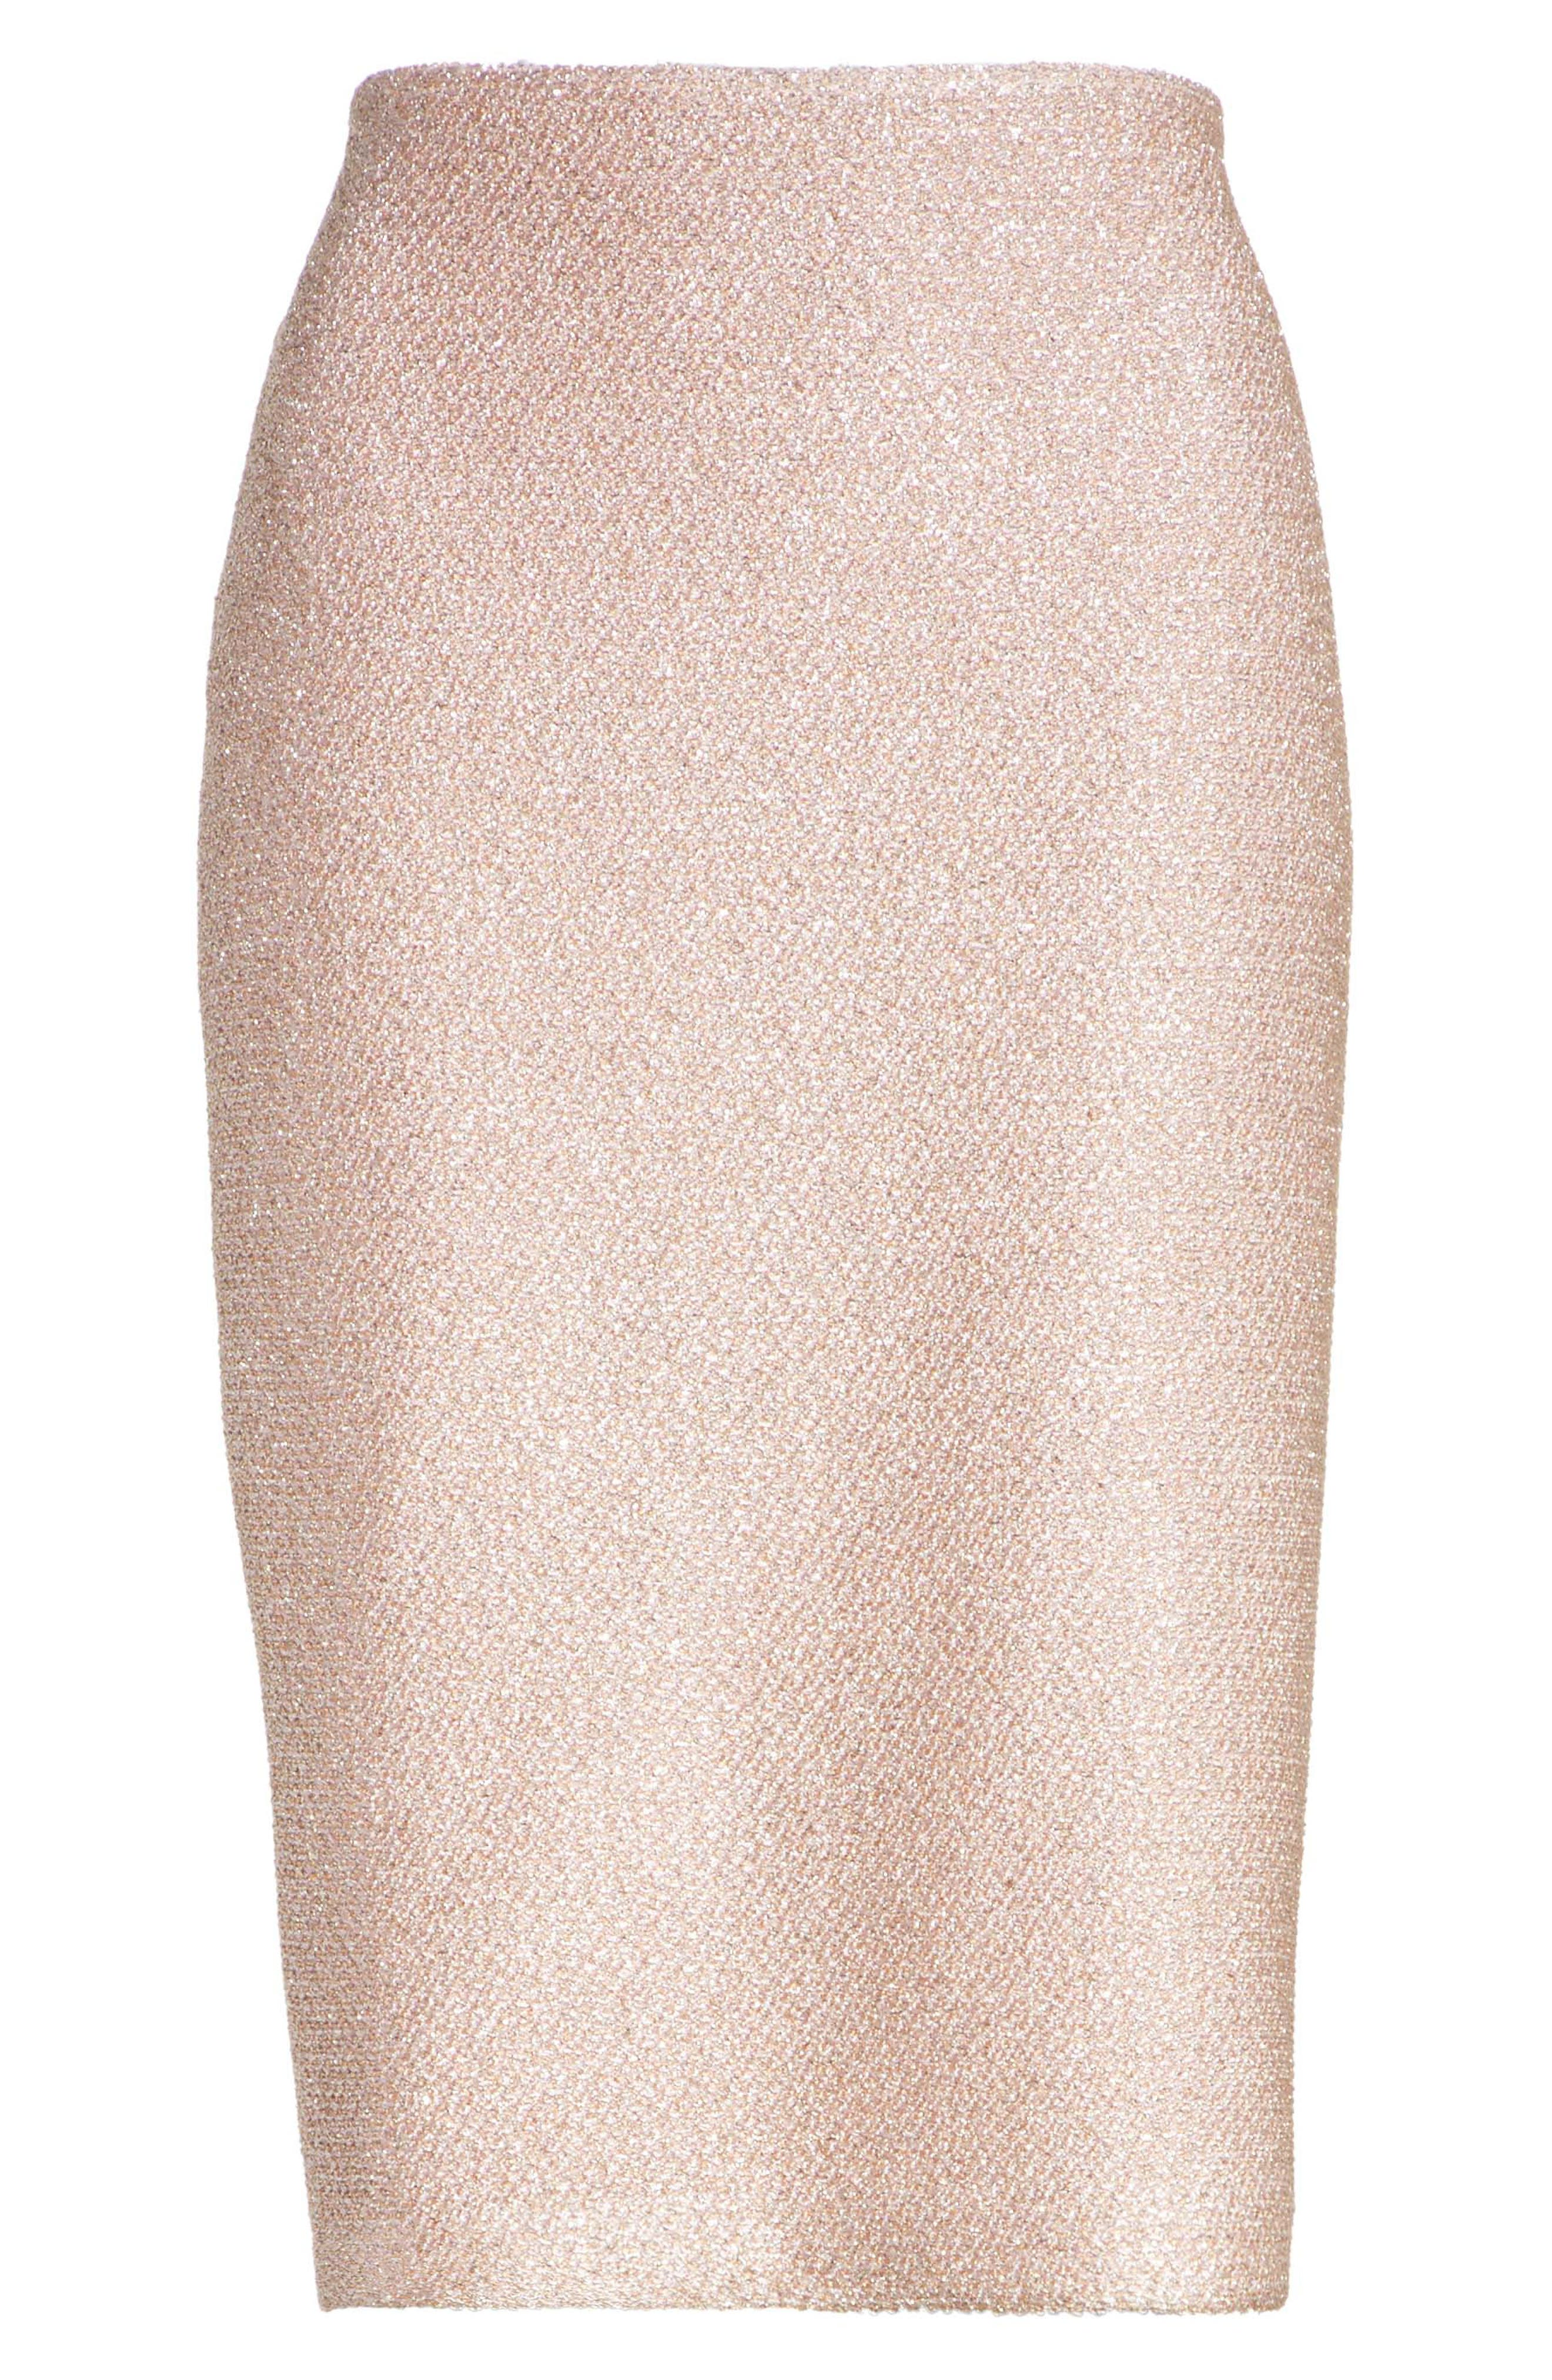 Frosted Metallic Knit Pencil Skirt,                             Alternate thumbnail 6, color,                             660